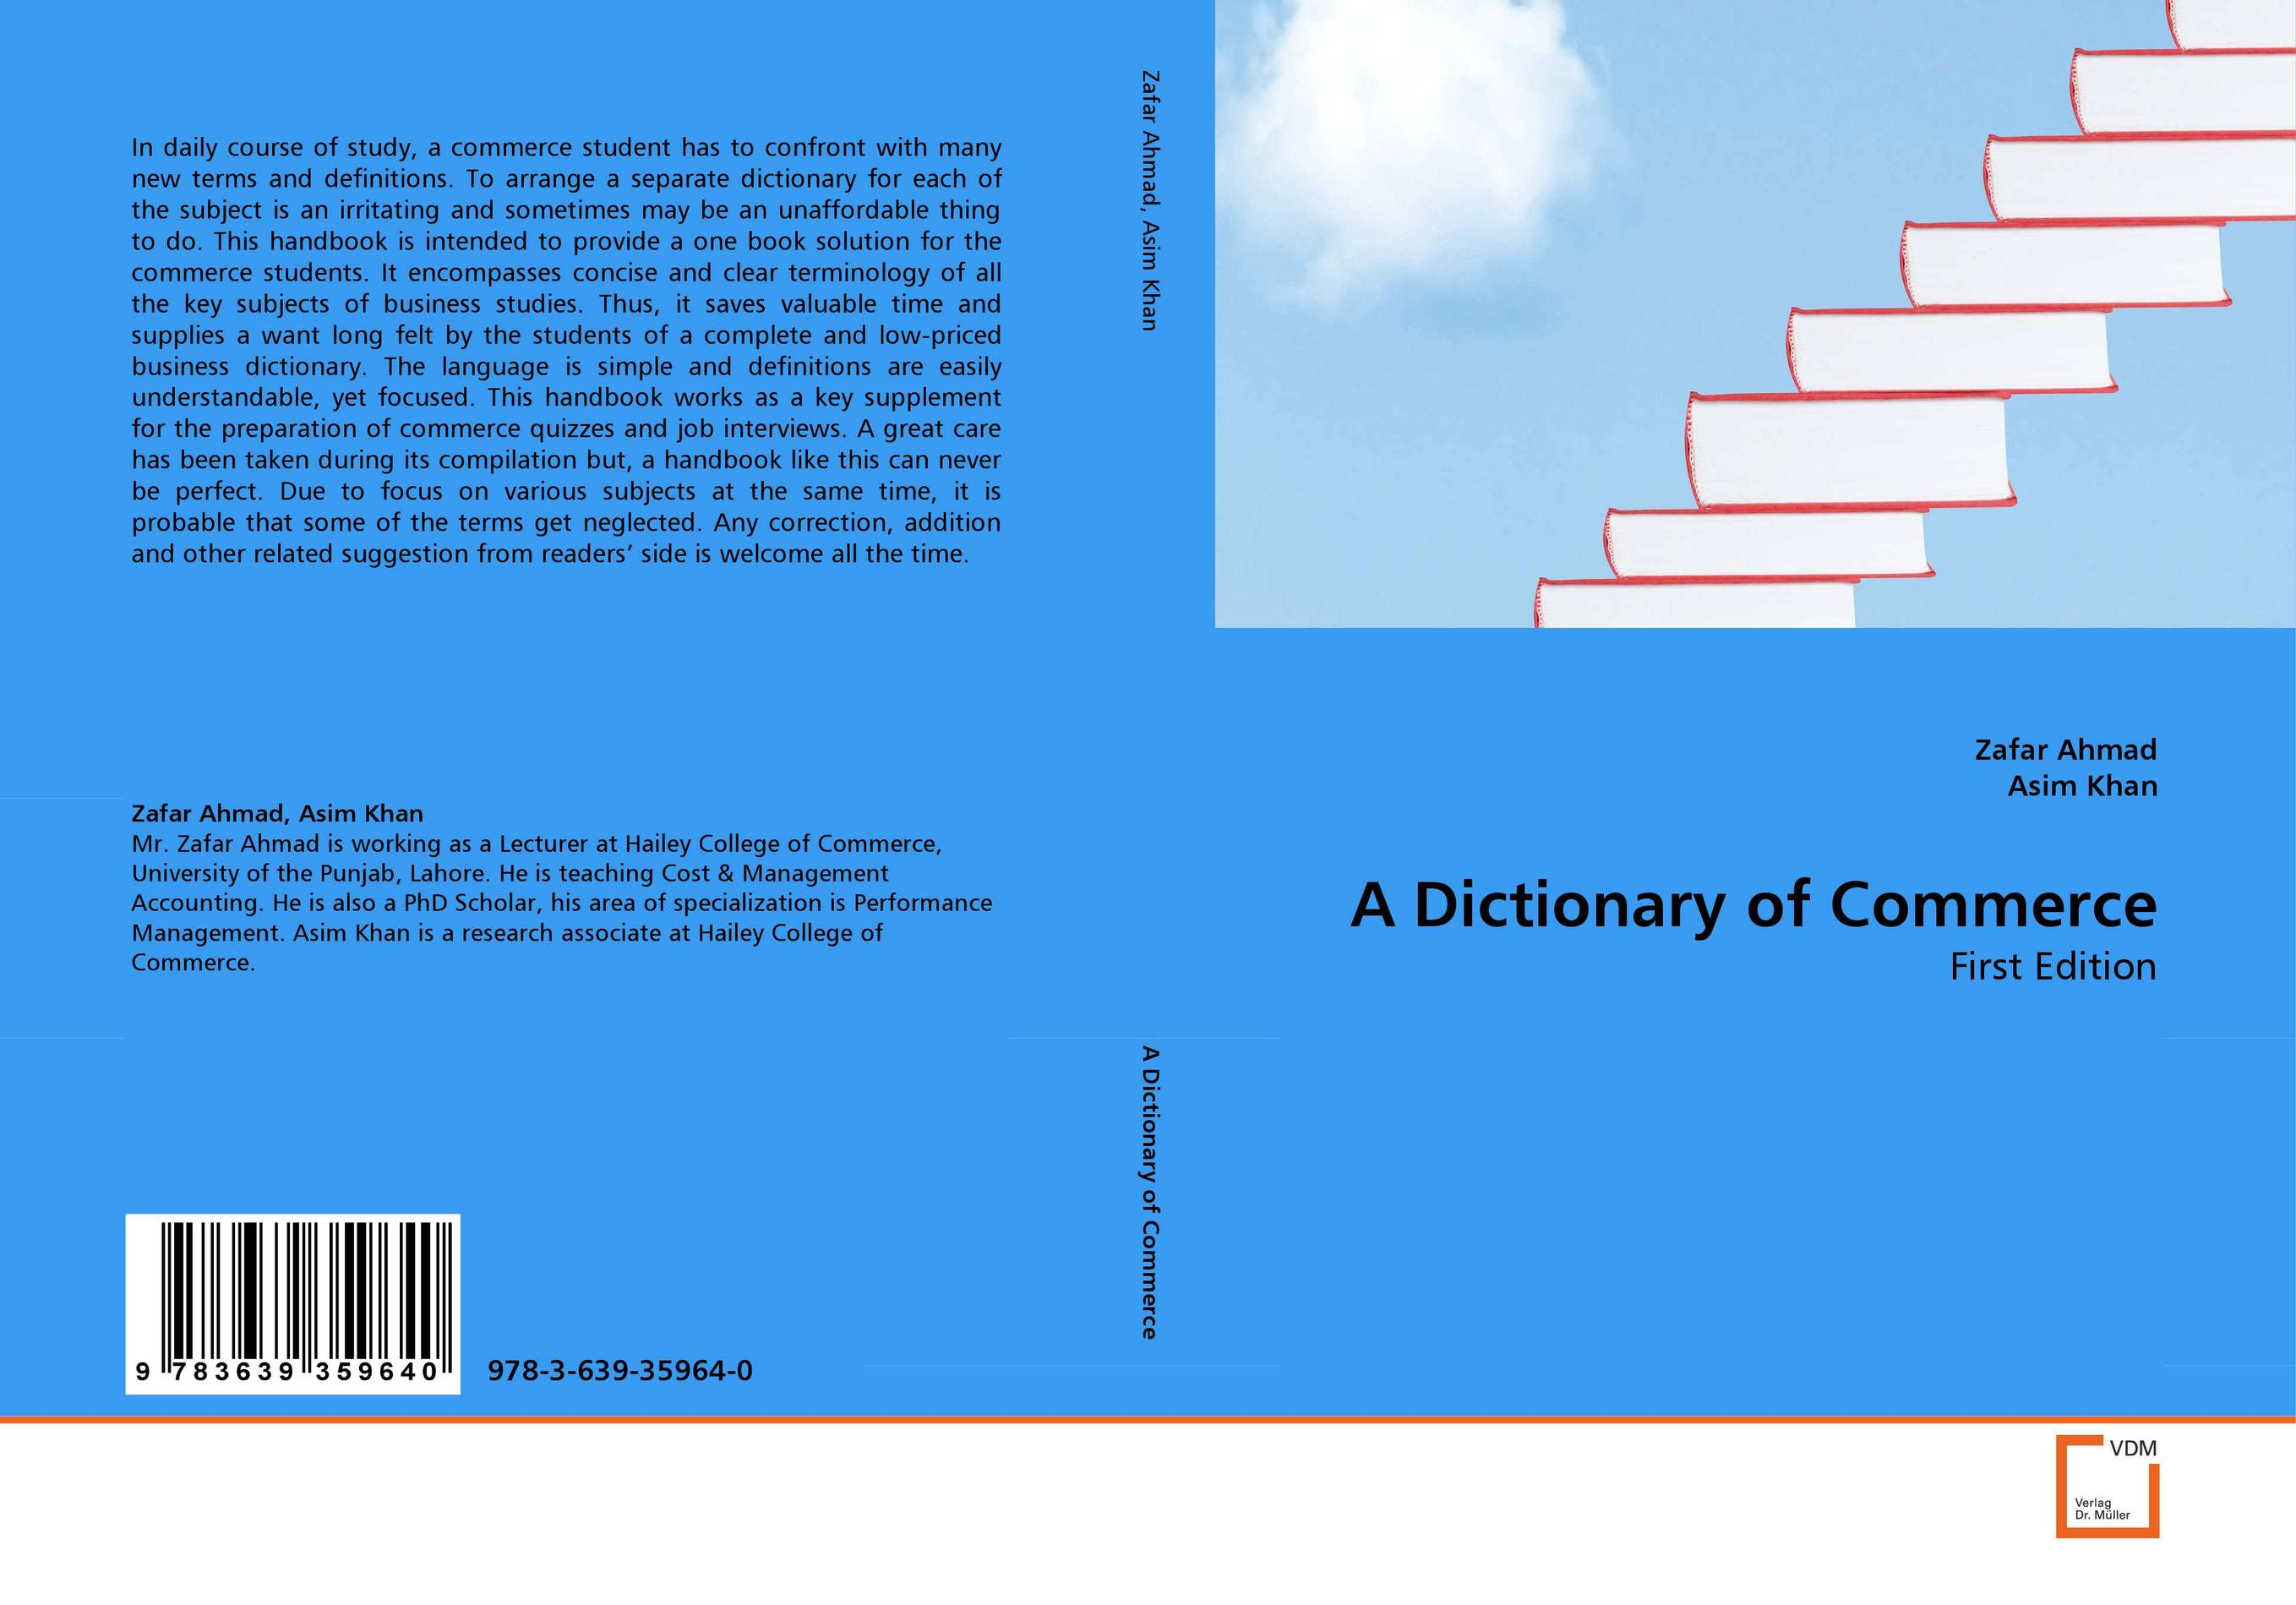 A Dictionary of Commerce calendar 2017 a5 calendar handbook of efficiency for industry and commerce business notepad log can be customized logo